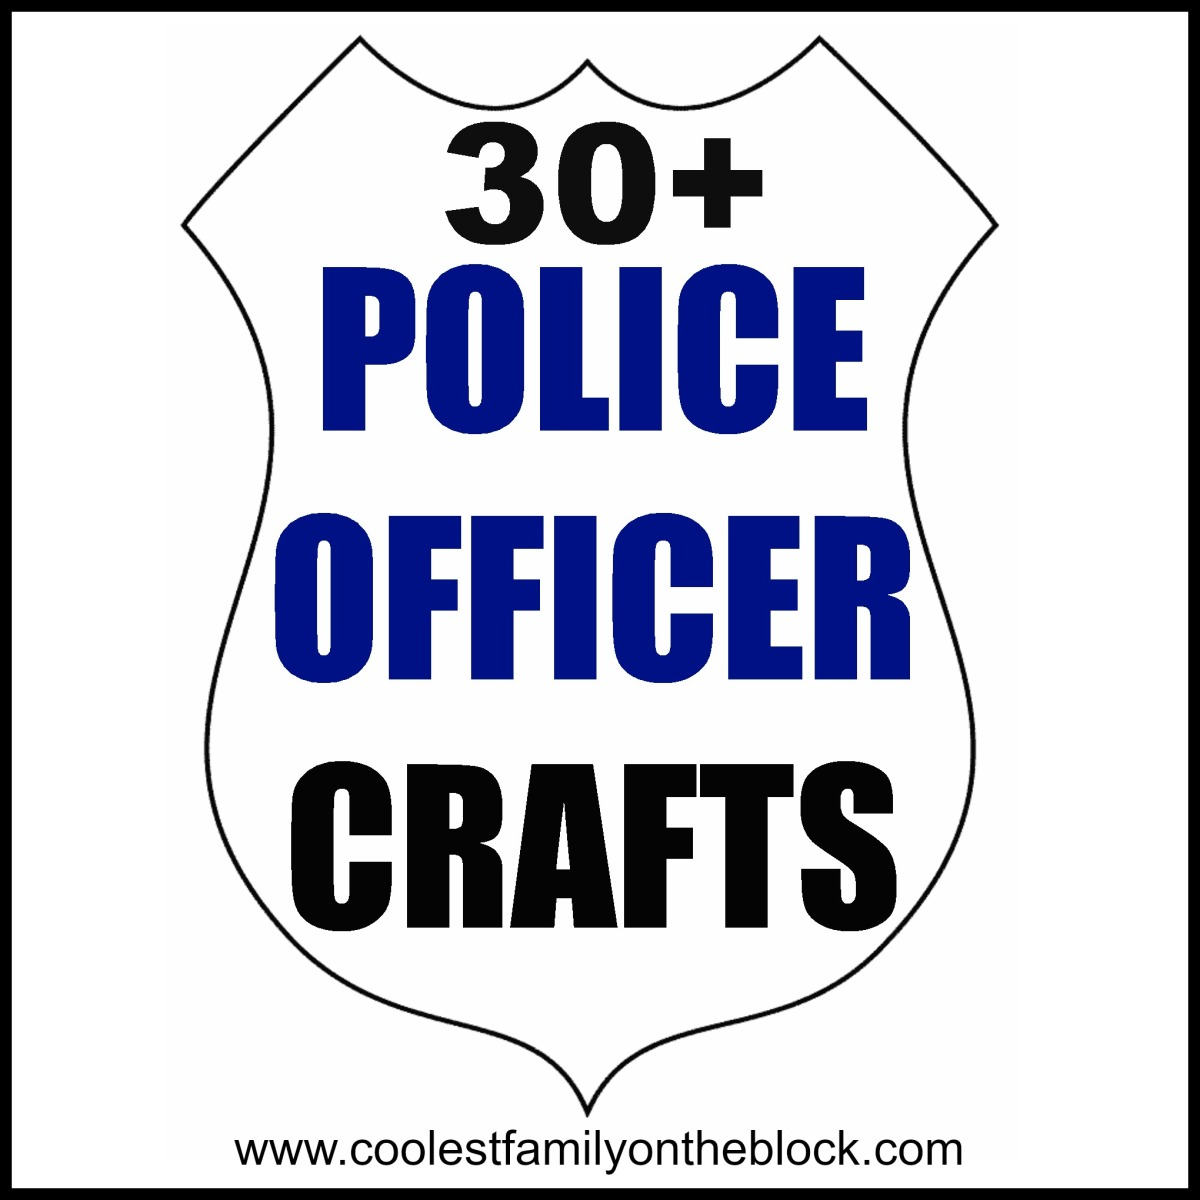 Police Officer Crafts For Kids National Week Coolest Family On The Block